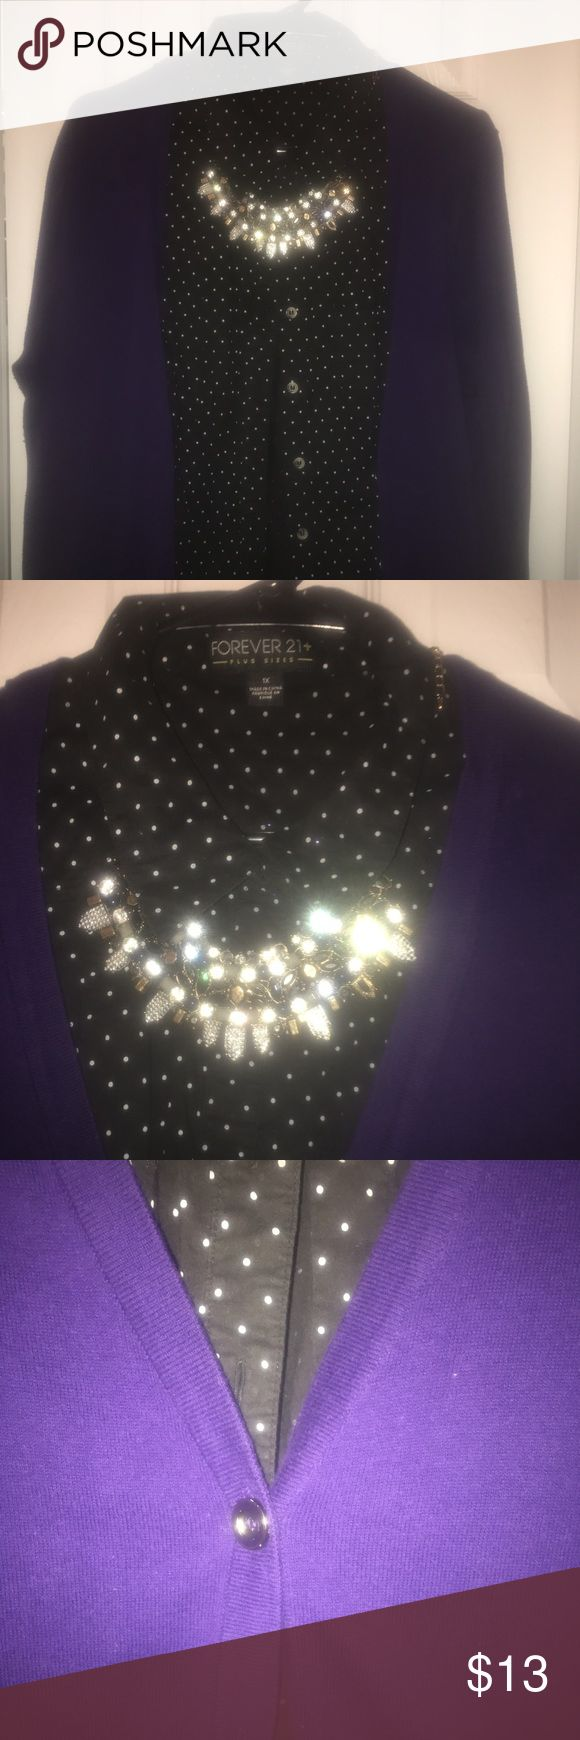 Double the style! Another great paired duo. Black and white polka dot forever 21 1x button down with a purple Forever 21 1x cardigan is the definition of cute style on the go! Every fashionista needs this great transitioning piece to take you from the office to happy hour! Goes great with a skater skirt and fishnets and booties ! Plus, pieces can worn together or separate. Win! Forever 21 Sweaters Cardigans